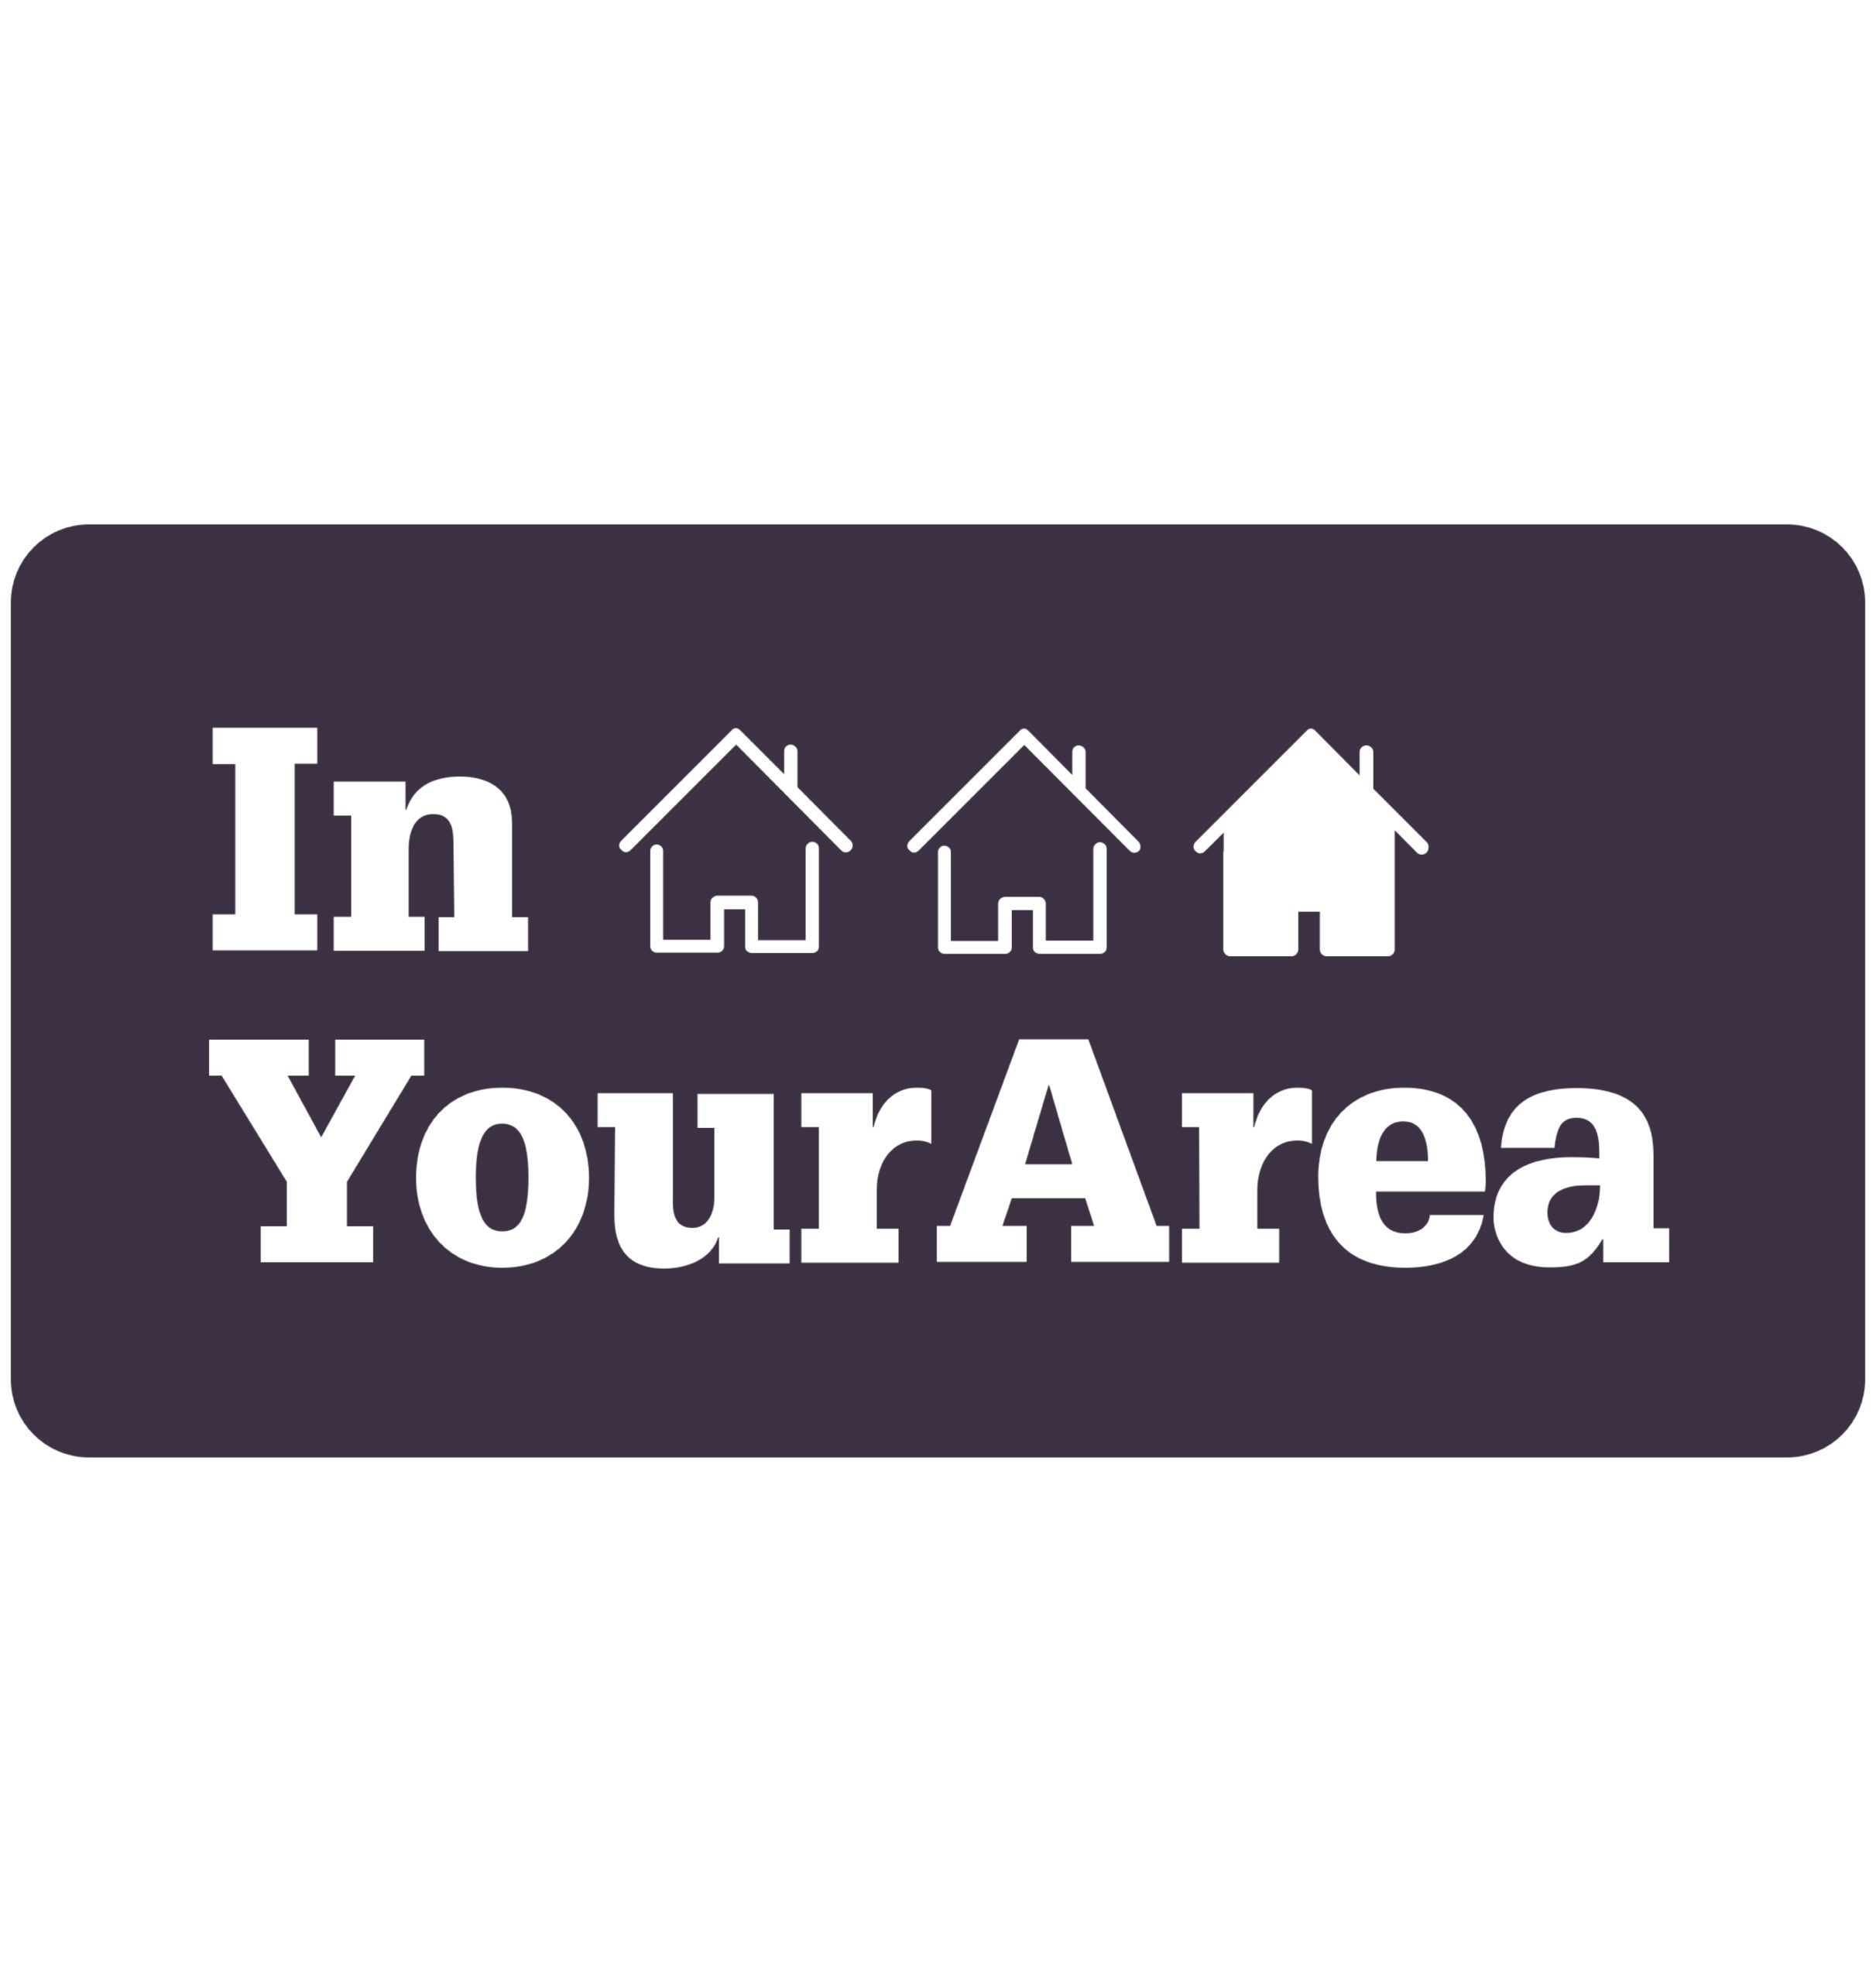 In Your Area logo